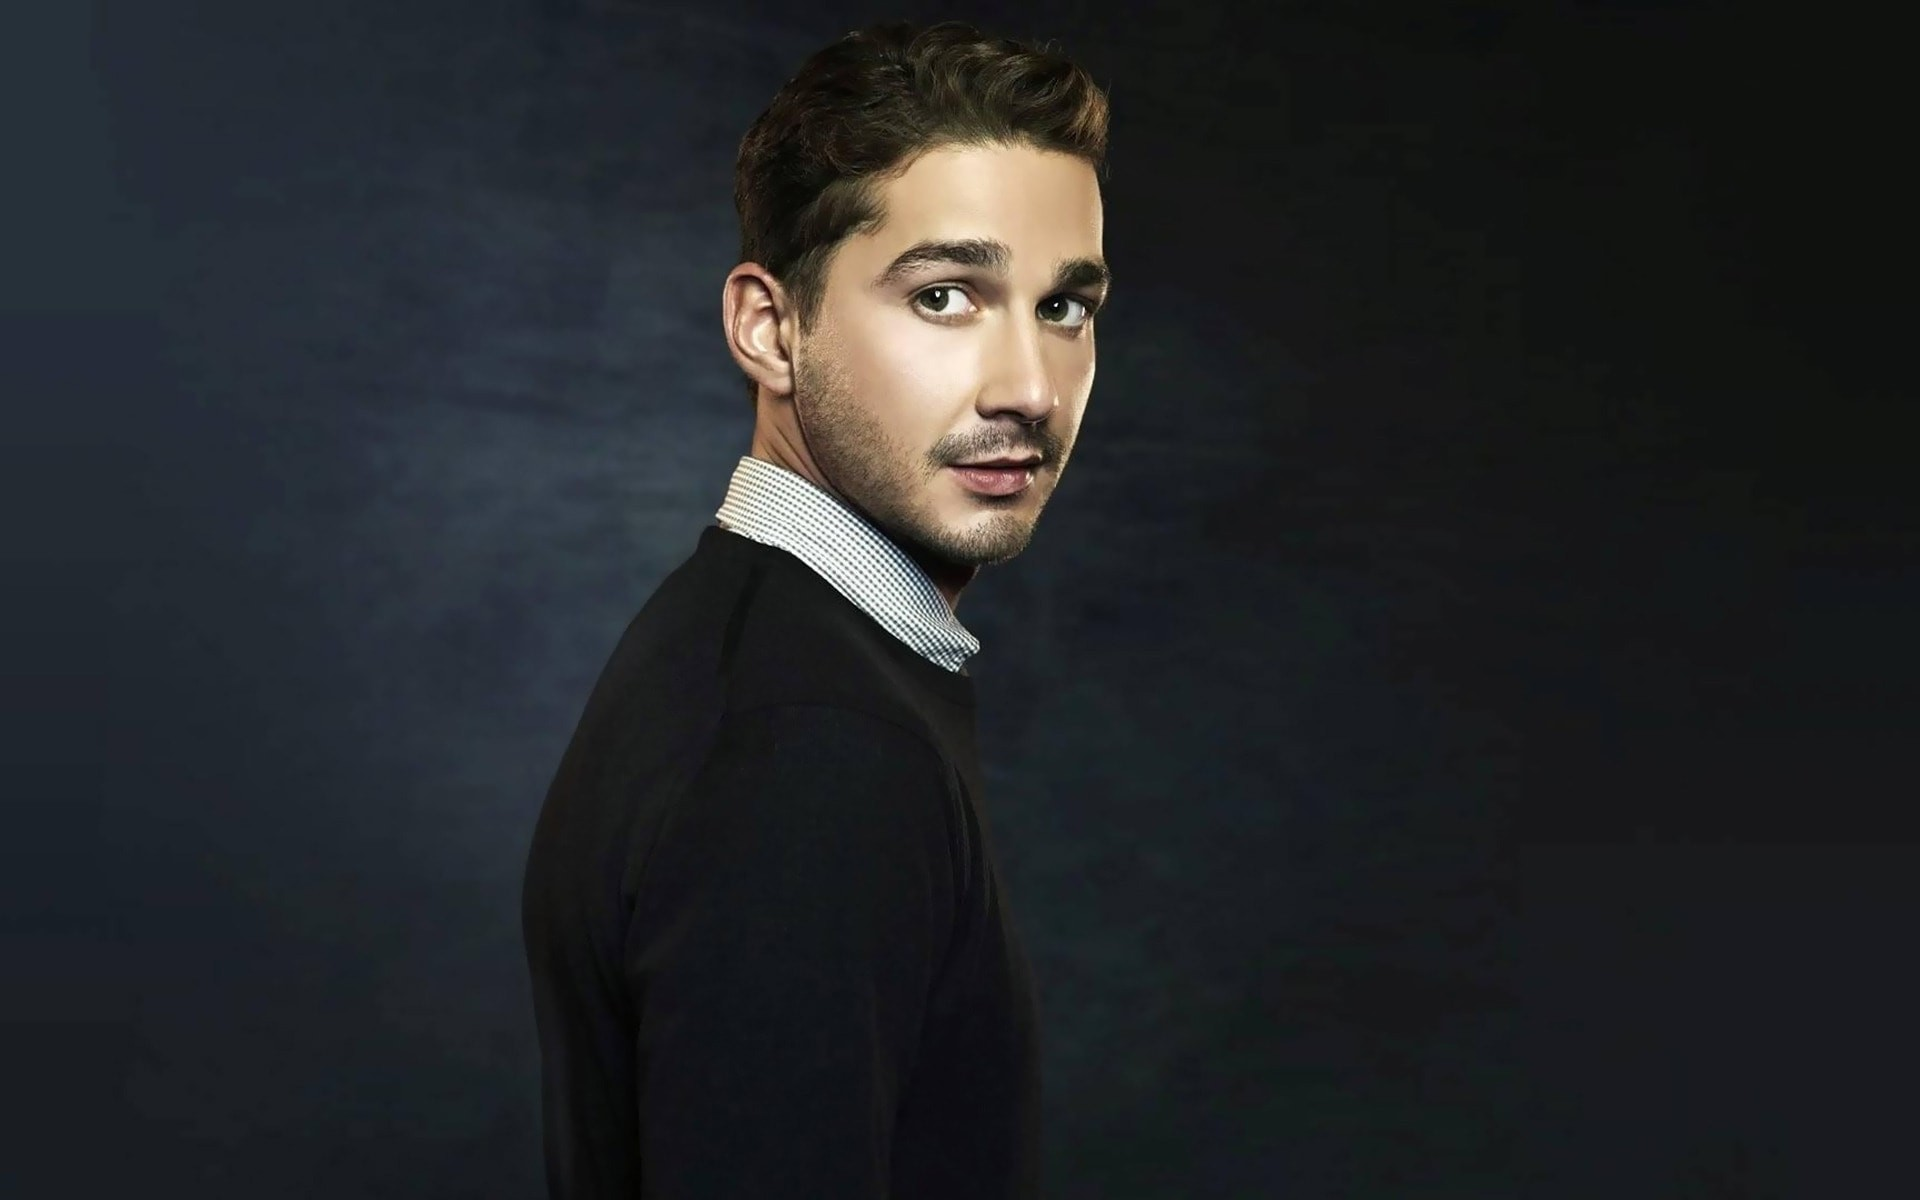 Shia Labeouf Pictures Shia Labeouf HQ wallpapers